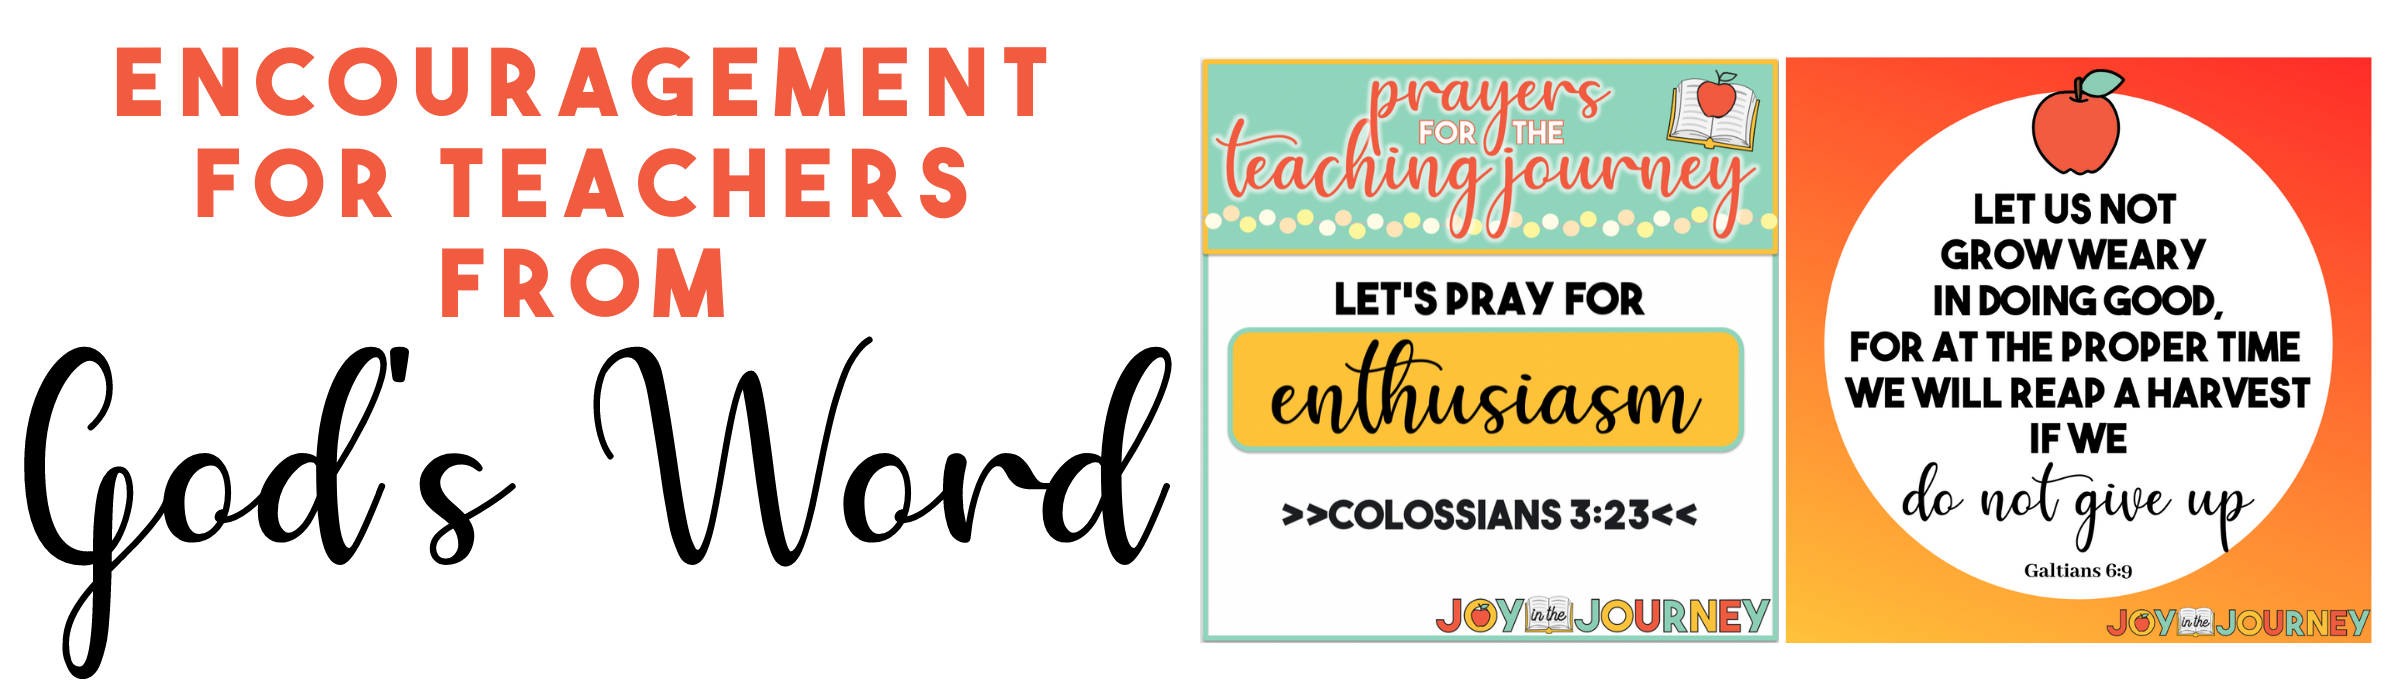 Encouragement from the Bible for teachers